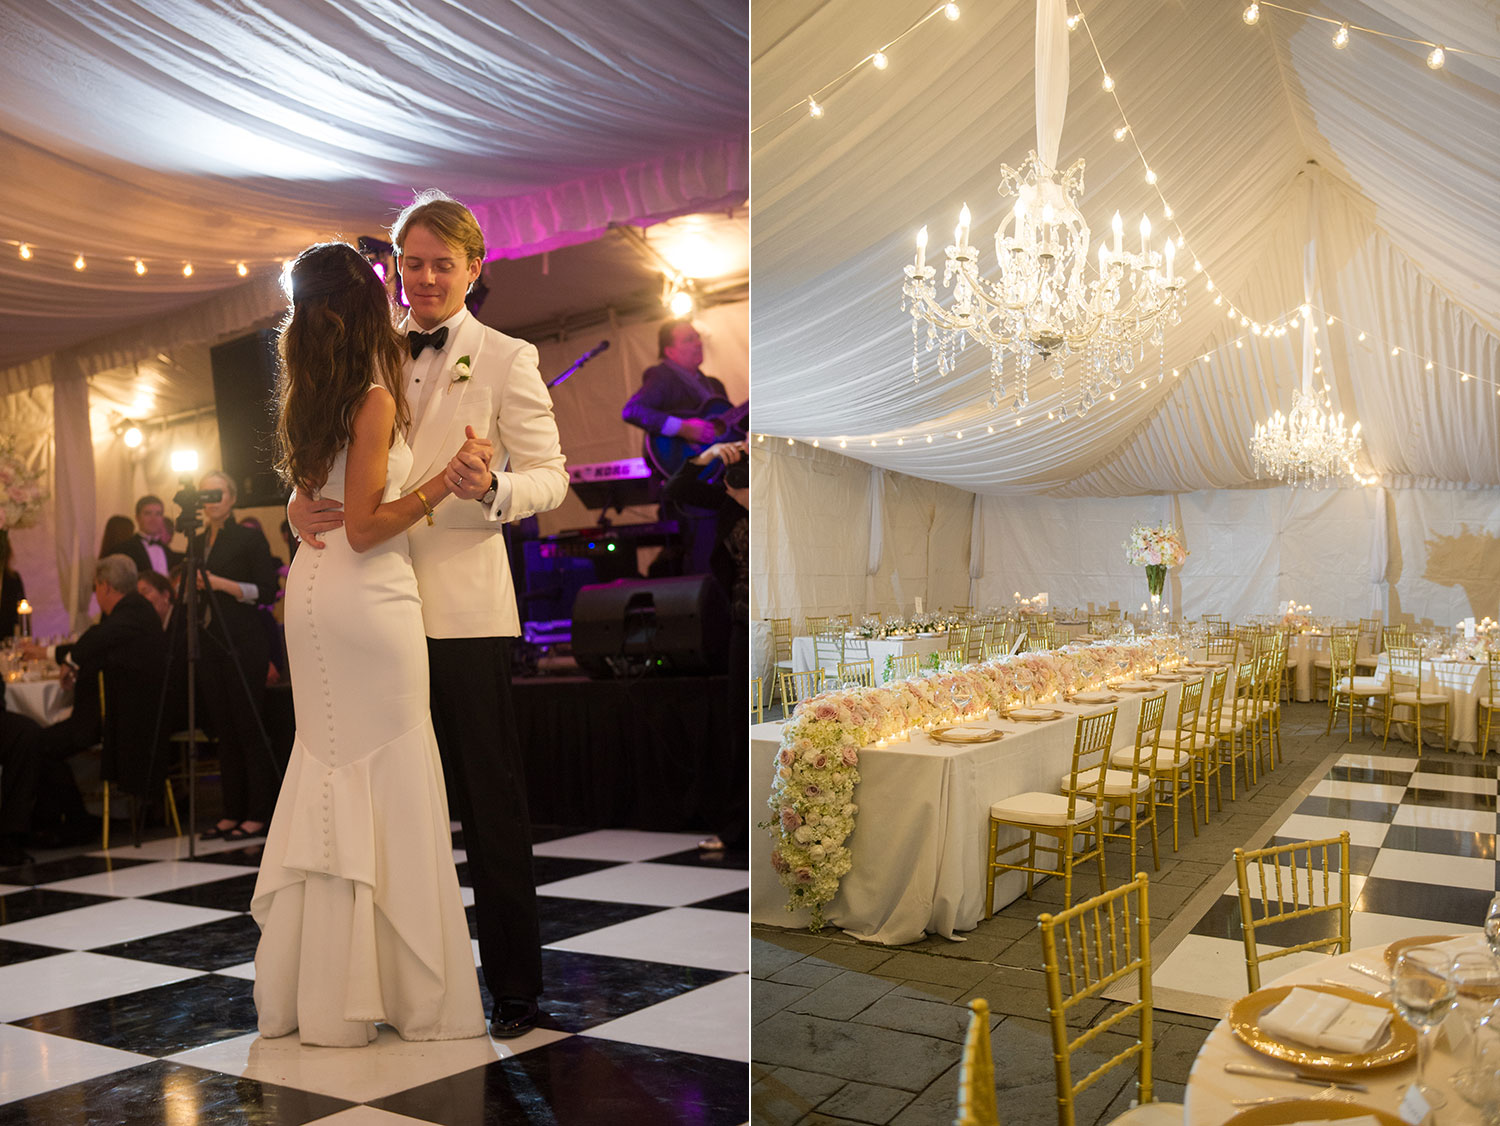 sapphireevents.com   New Orleans Wedding Planner and Designer   Black Tie Wedding at French Quarter's Old Ursuline Convent   Sapphire Events